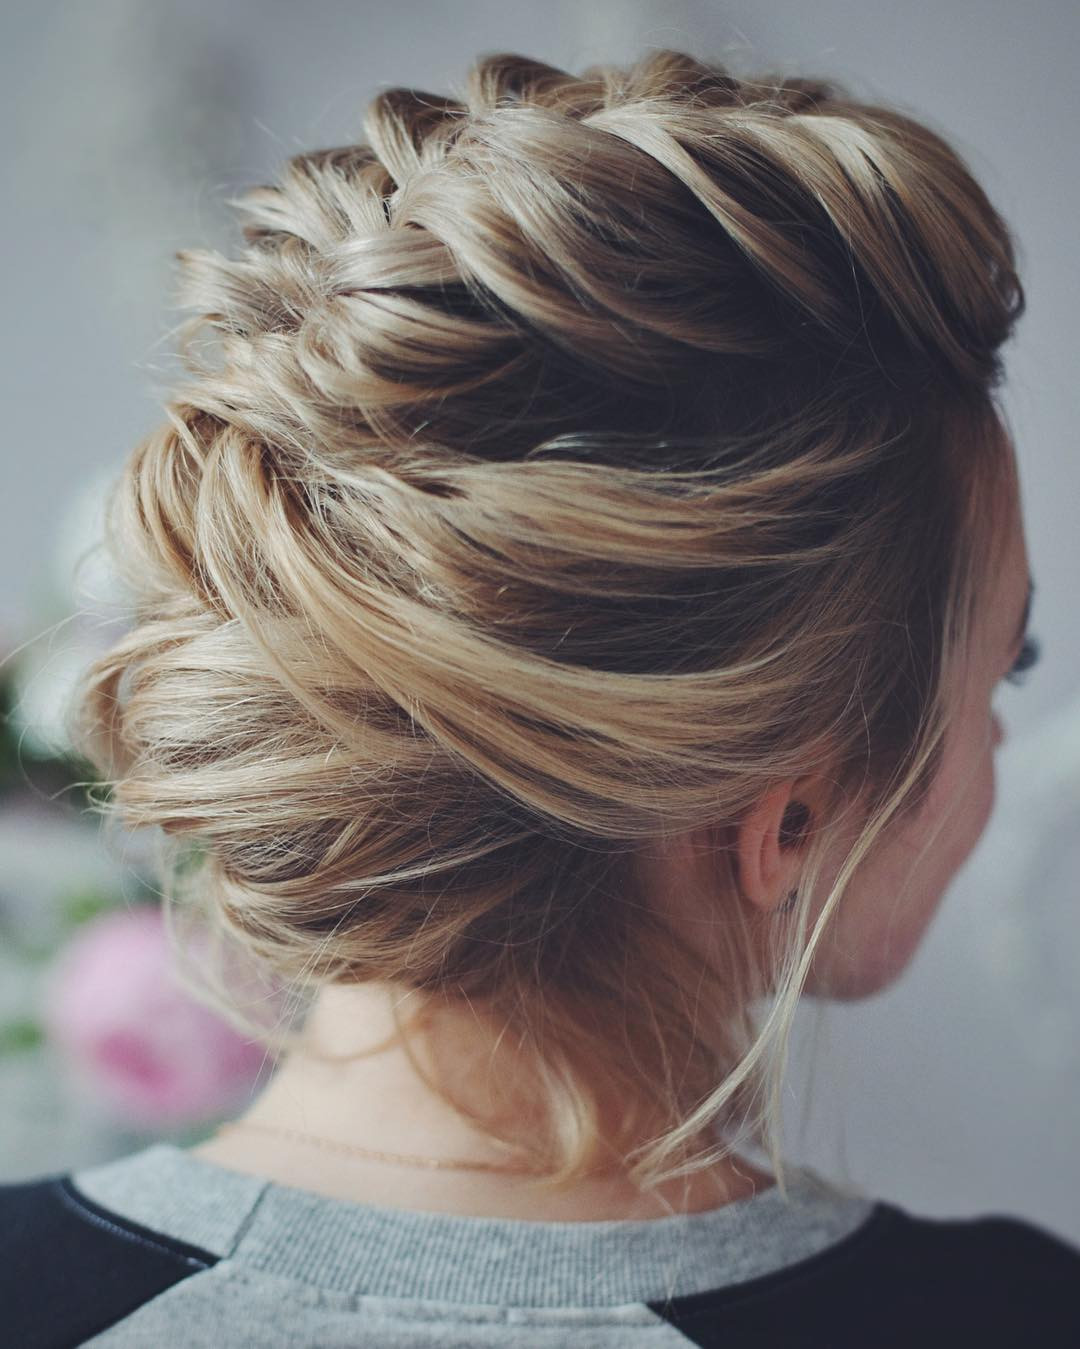 Prom Hairstyles For Medium Hair Up  Prom Hairstyles Easy Prom Hairstyles for Short and Medium